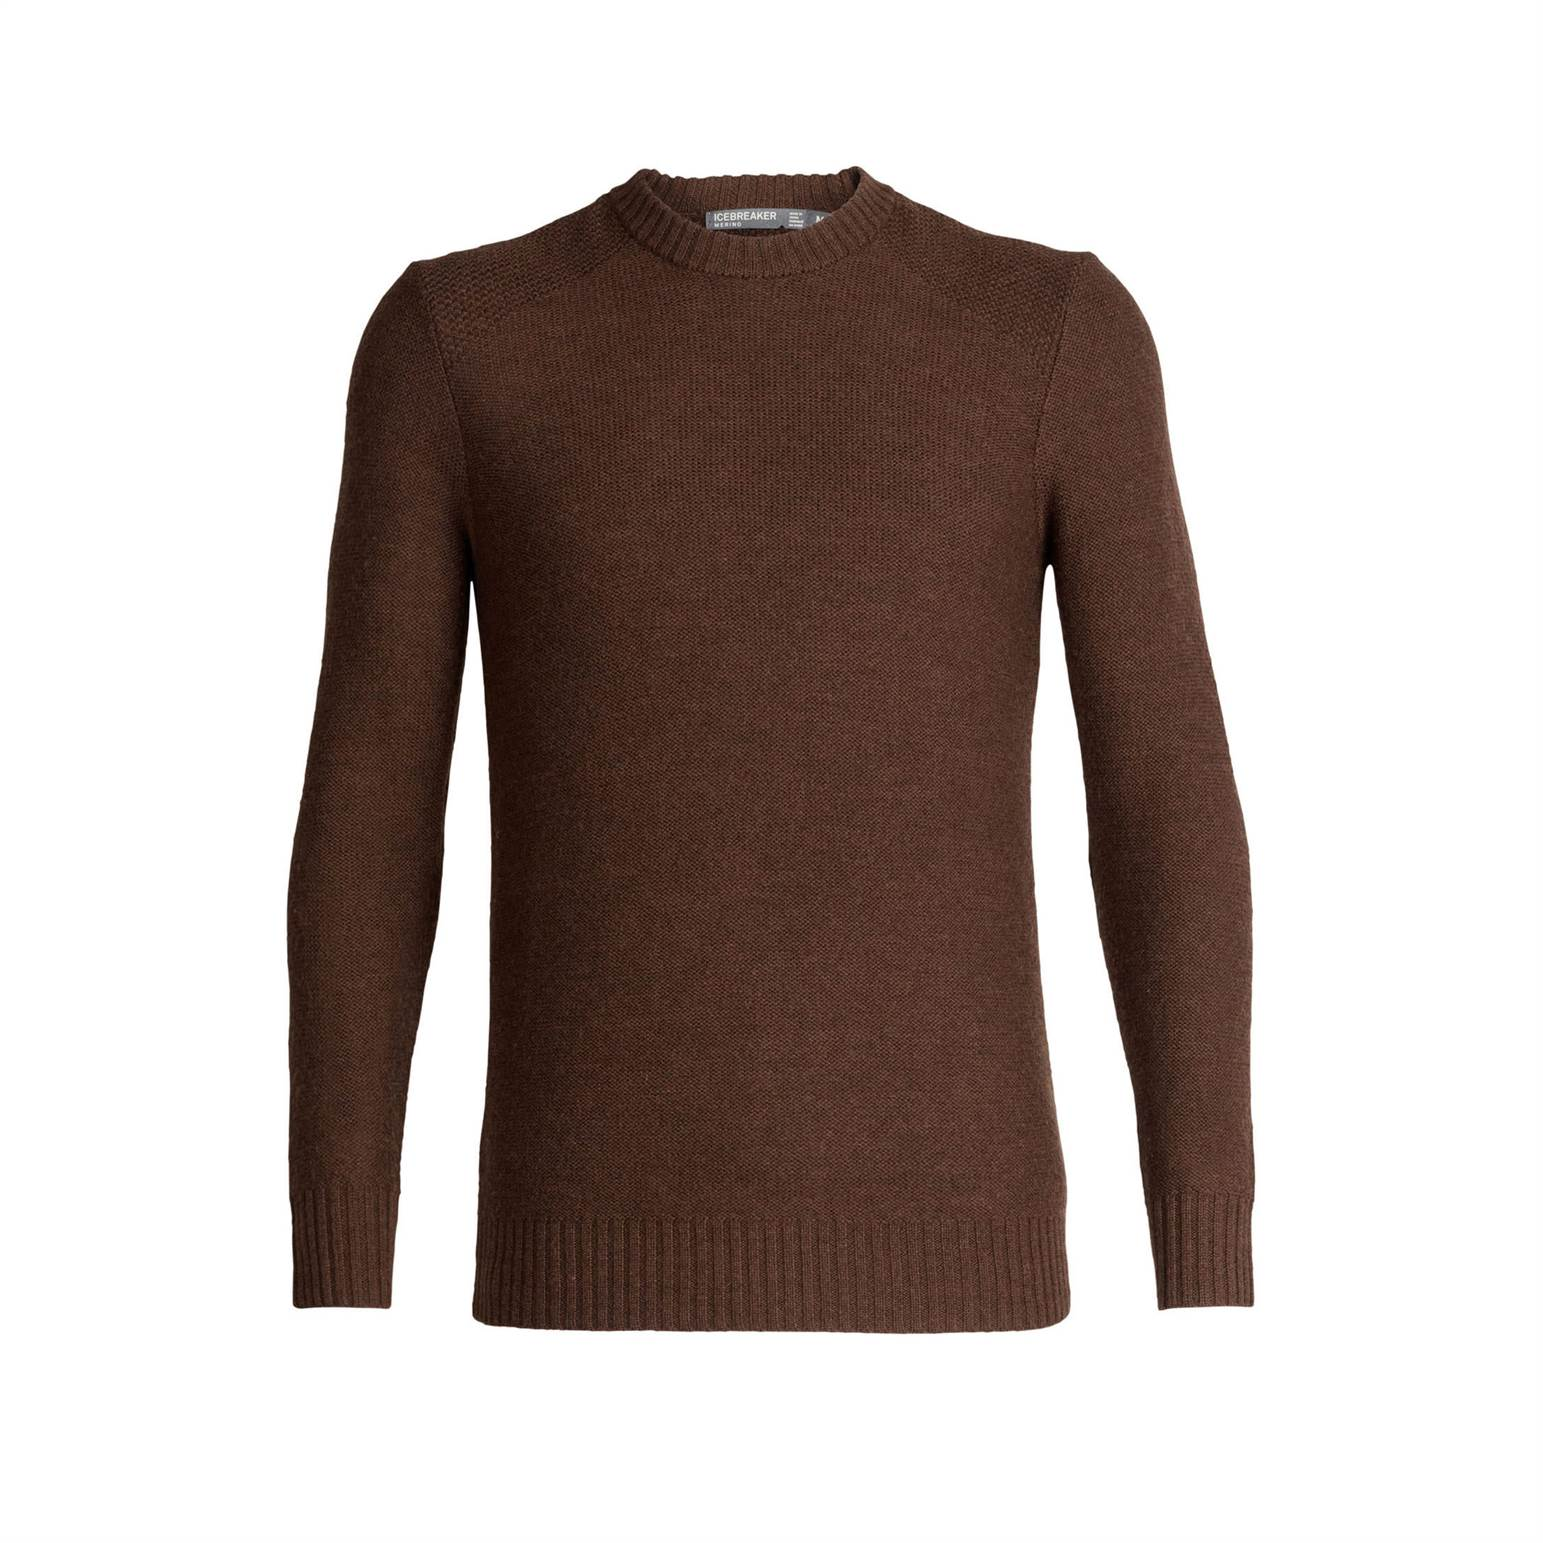 Waypoint Crewe Sweater - Men's